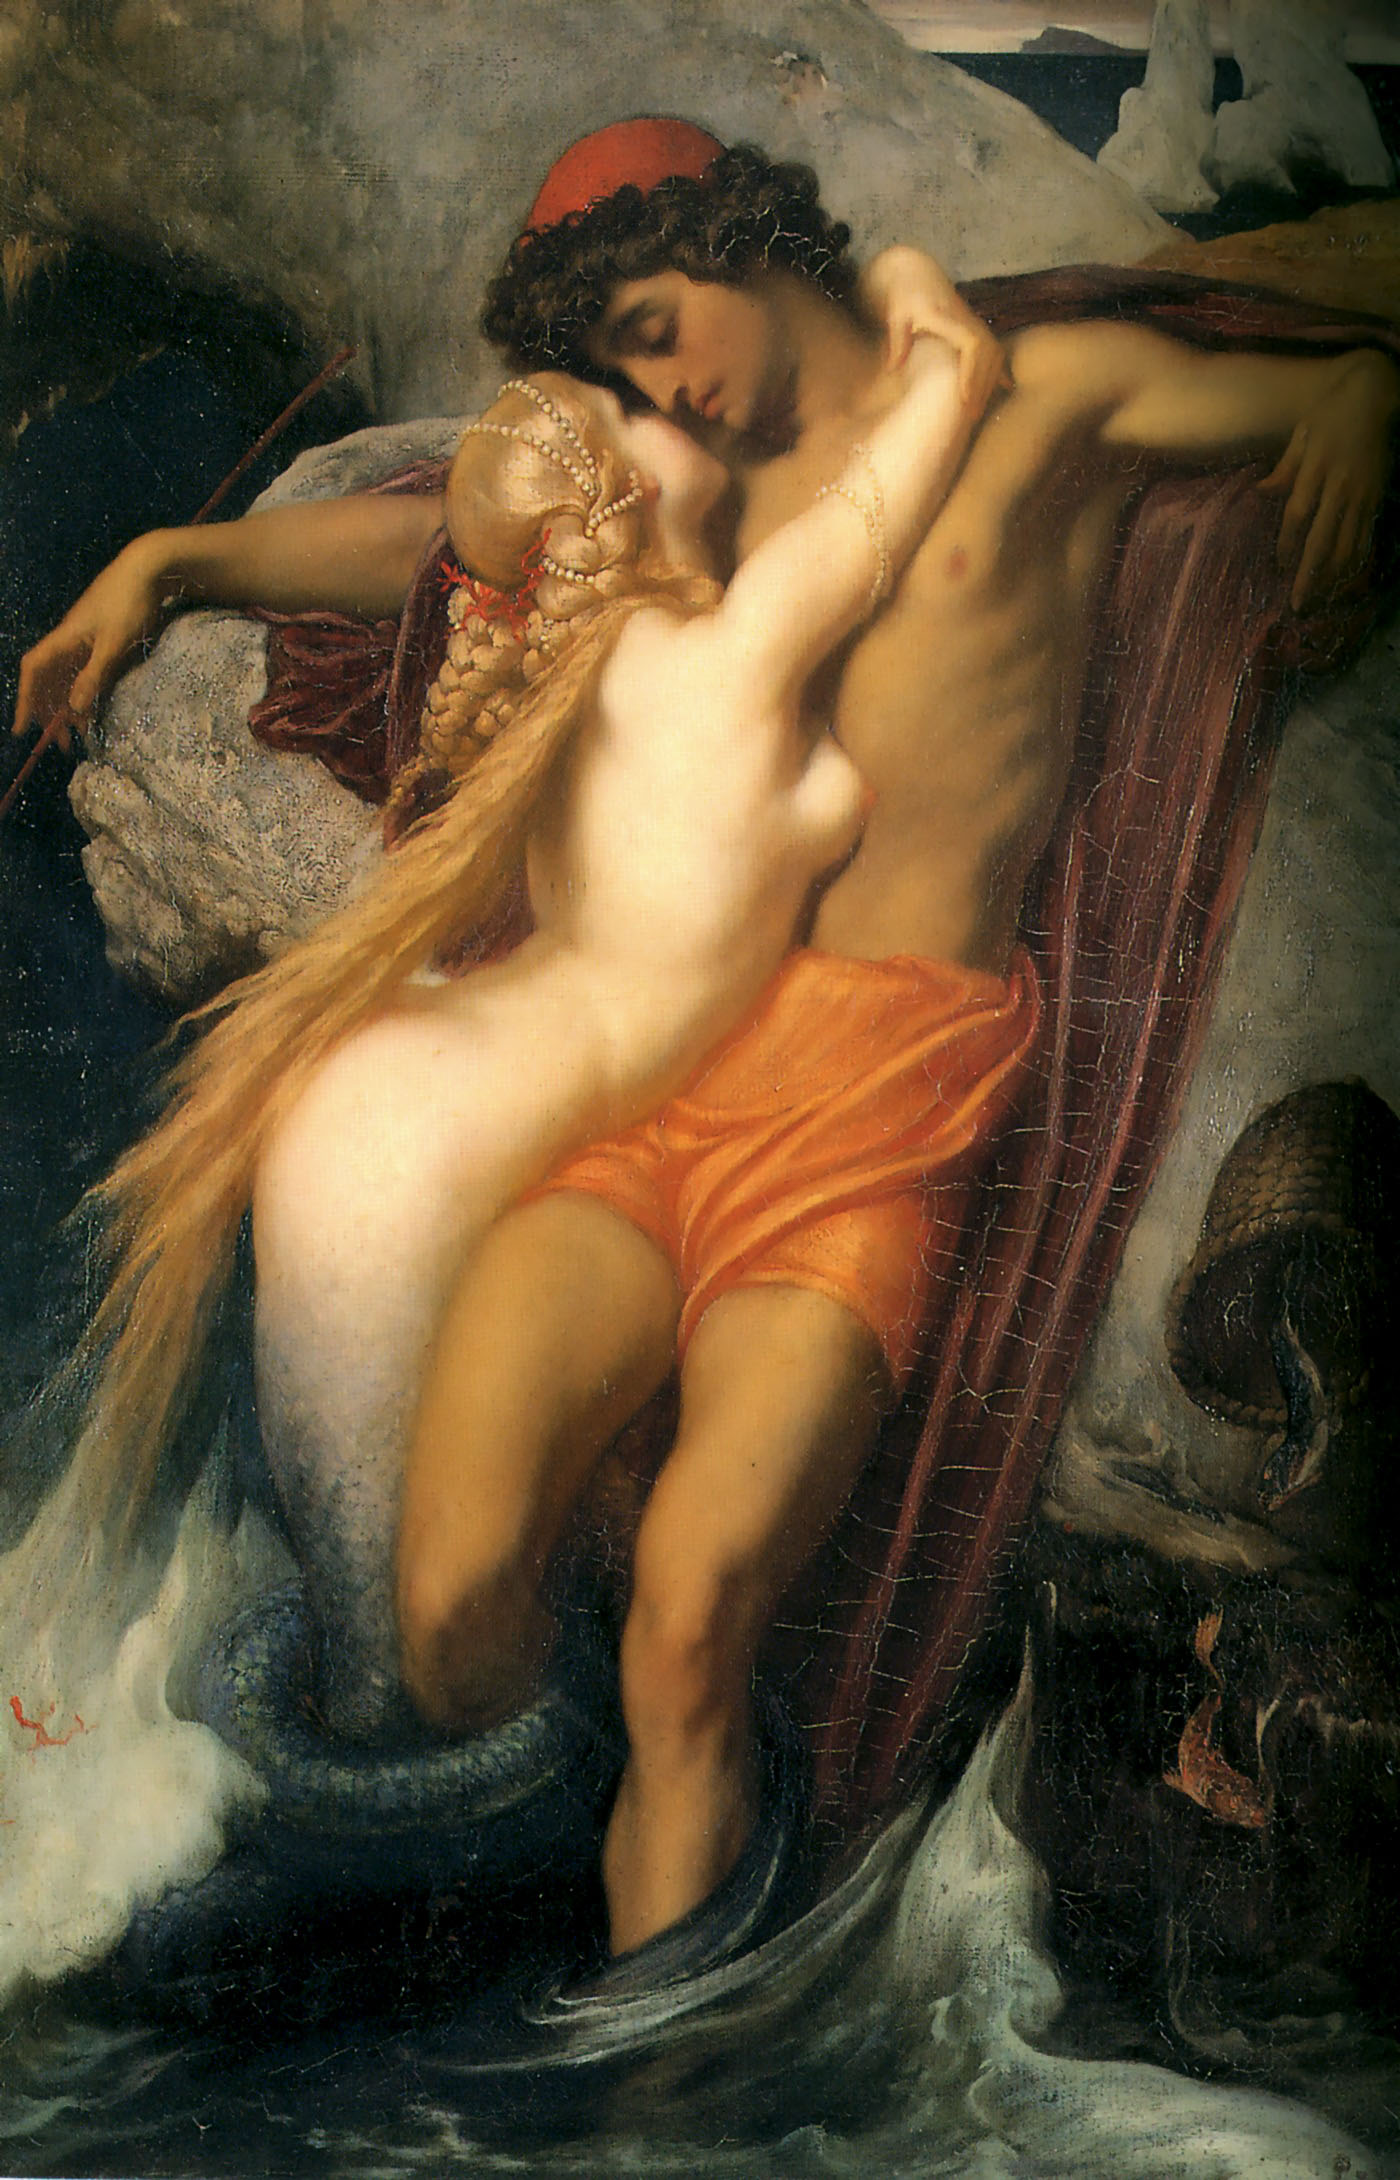 https://i0.wp.com/upload.wikimedia.org/wikipedia/commons/e/ef/Leighton-The_Fisherman_and_the_Syren-c._1856-1858.jpg